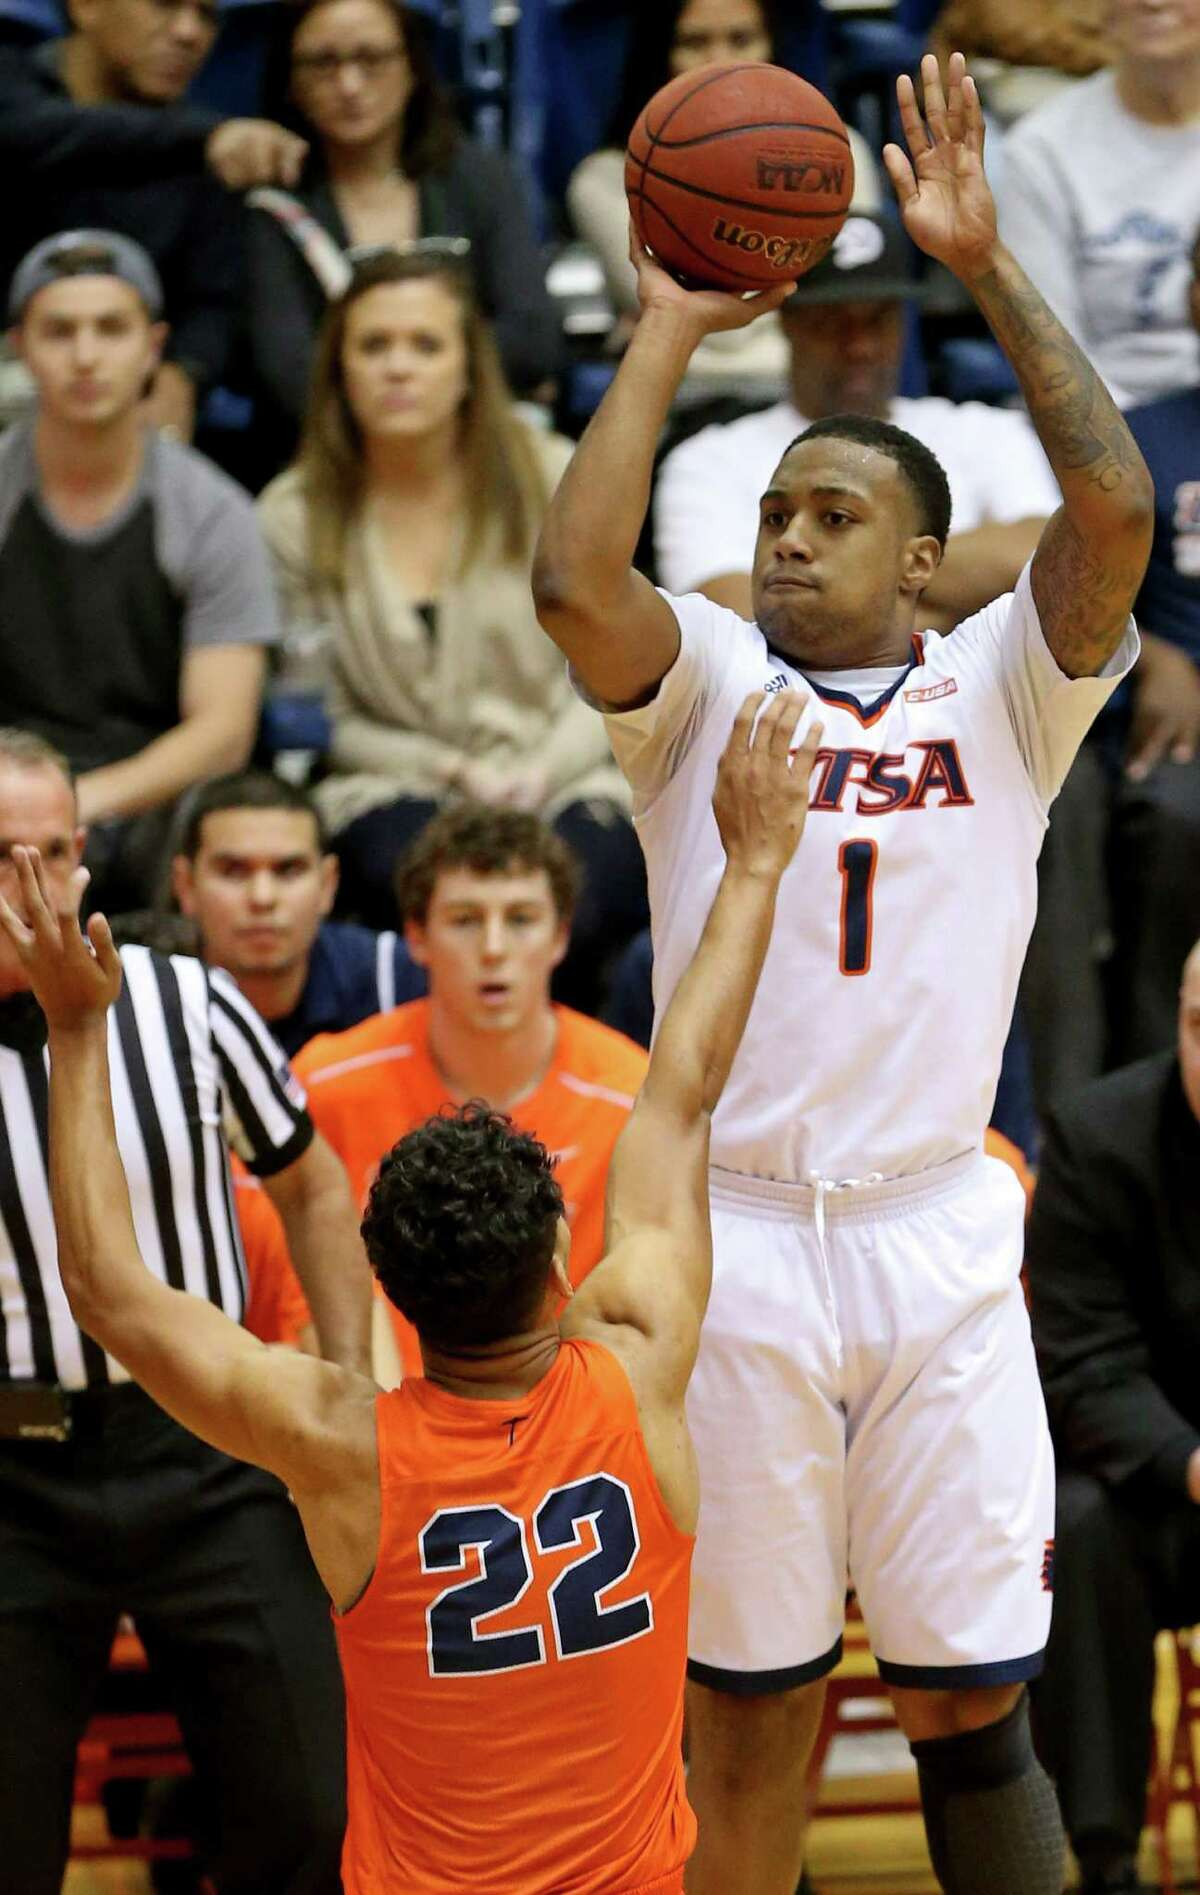 UTSA's Jeff Beverly shoots over UTEP's Paul Thomas during first half action on Jan. 1, 2017 at the Convocation Center.